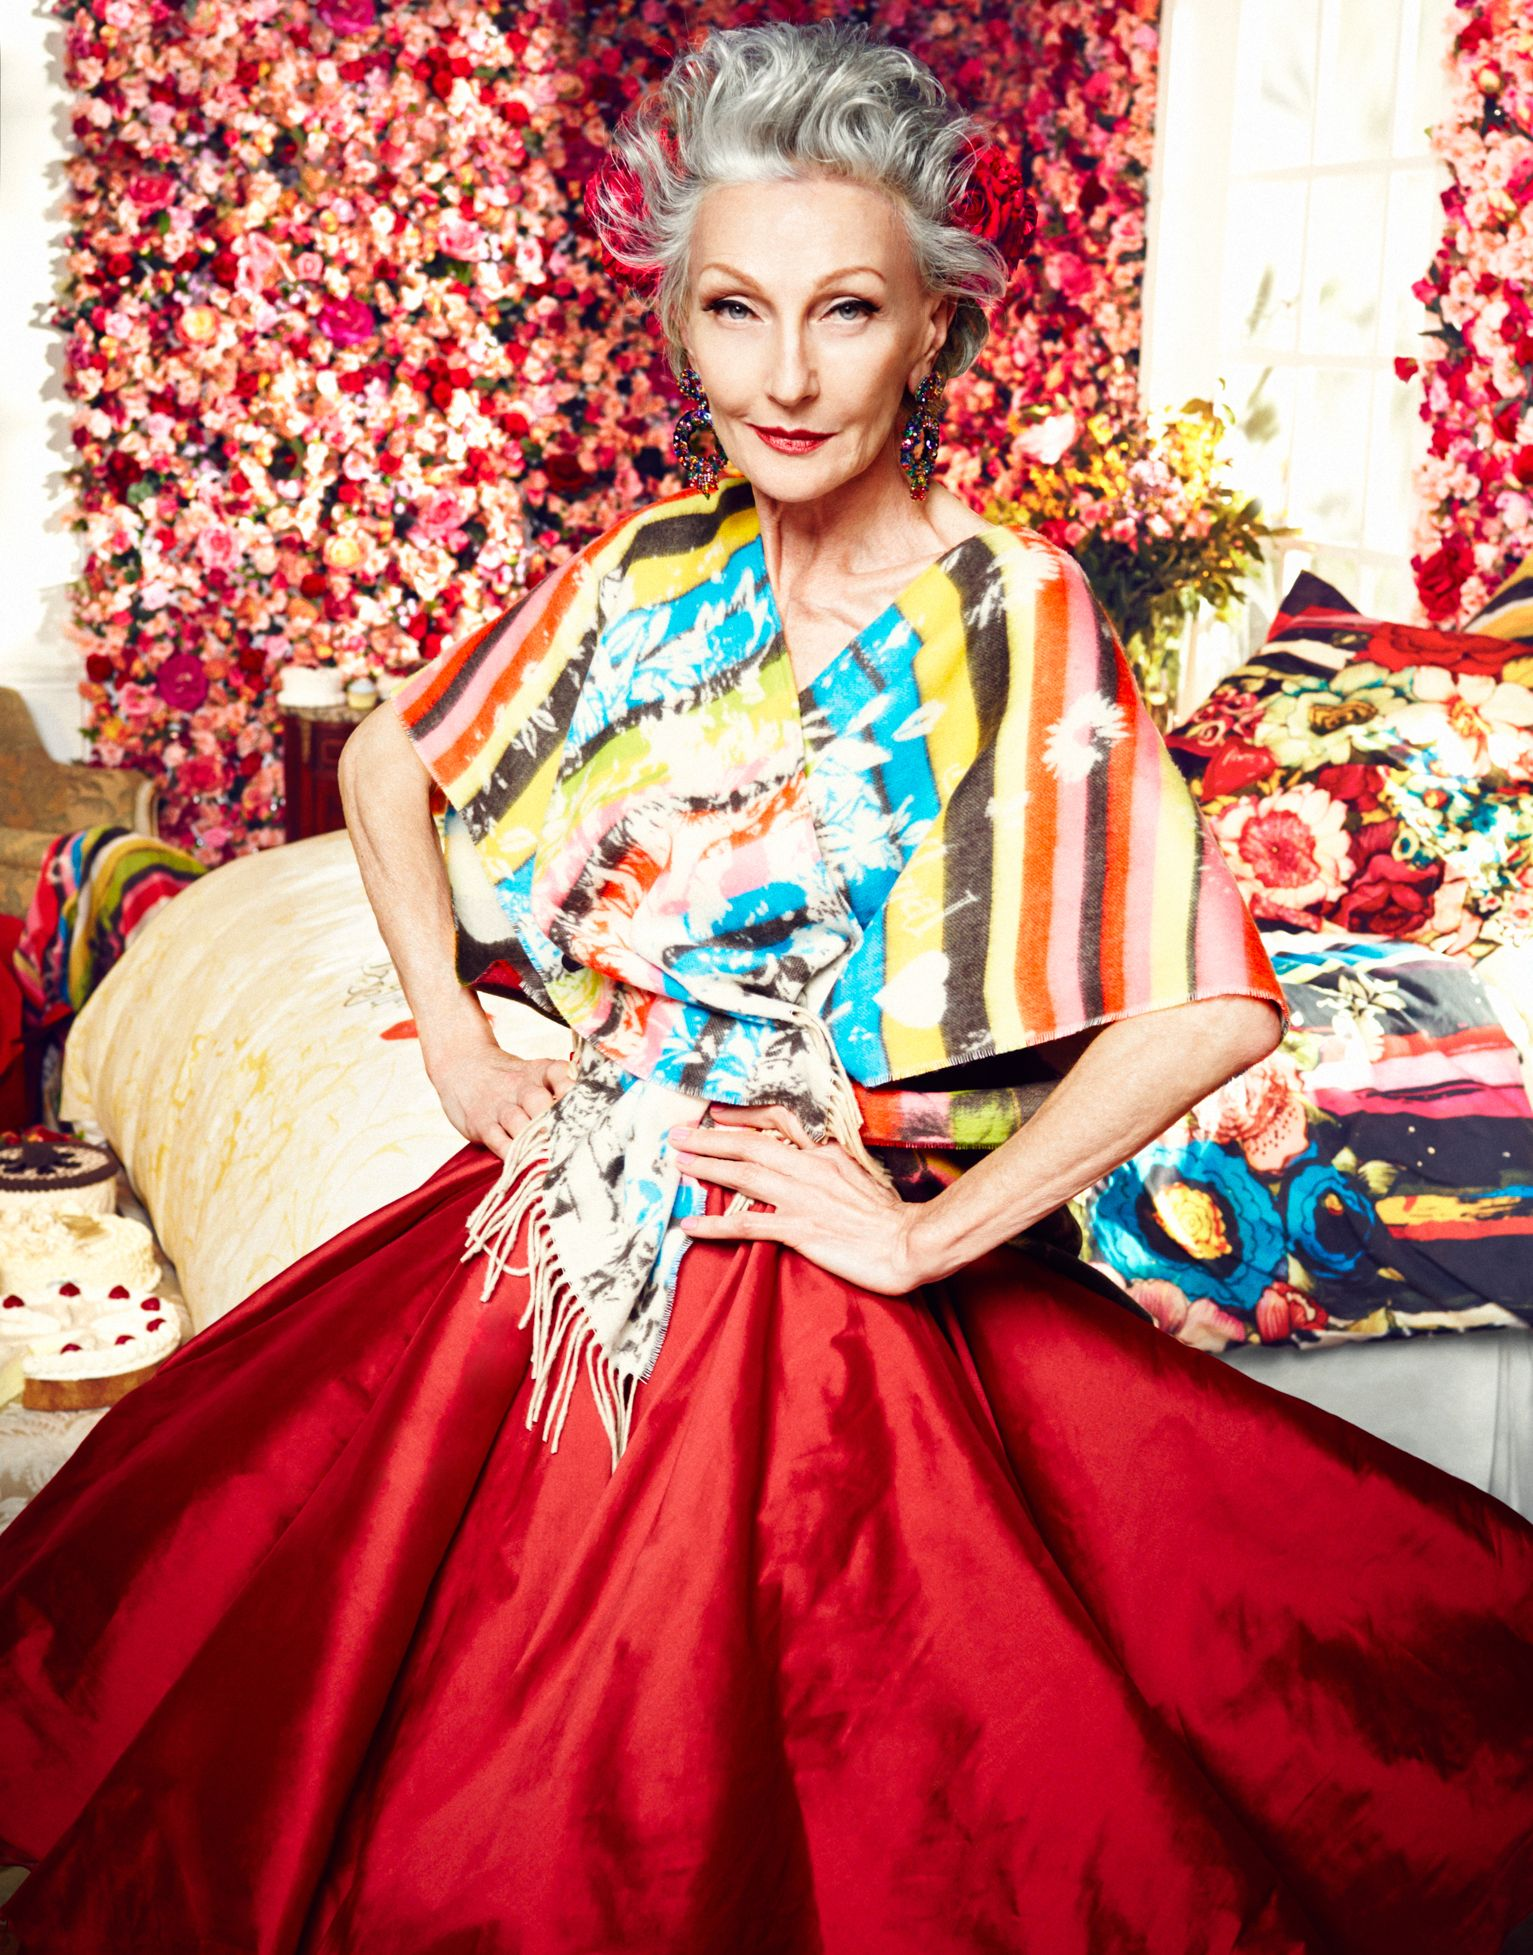 No-one is too old for fairytales at Desigual! Our clothes are for the young and the young-at-heart.